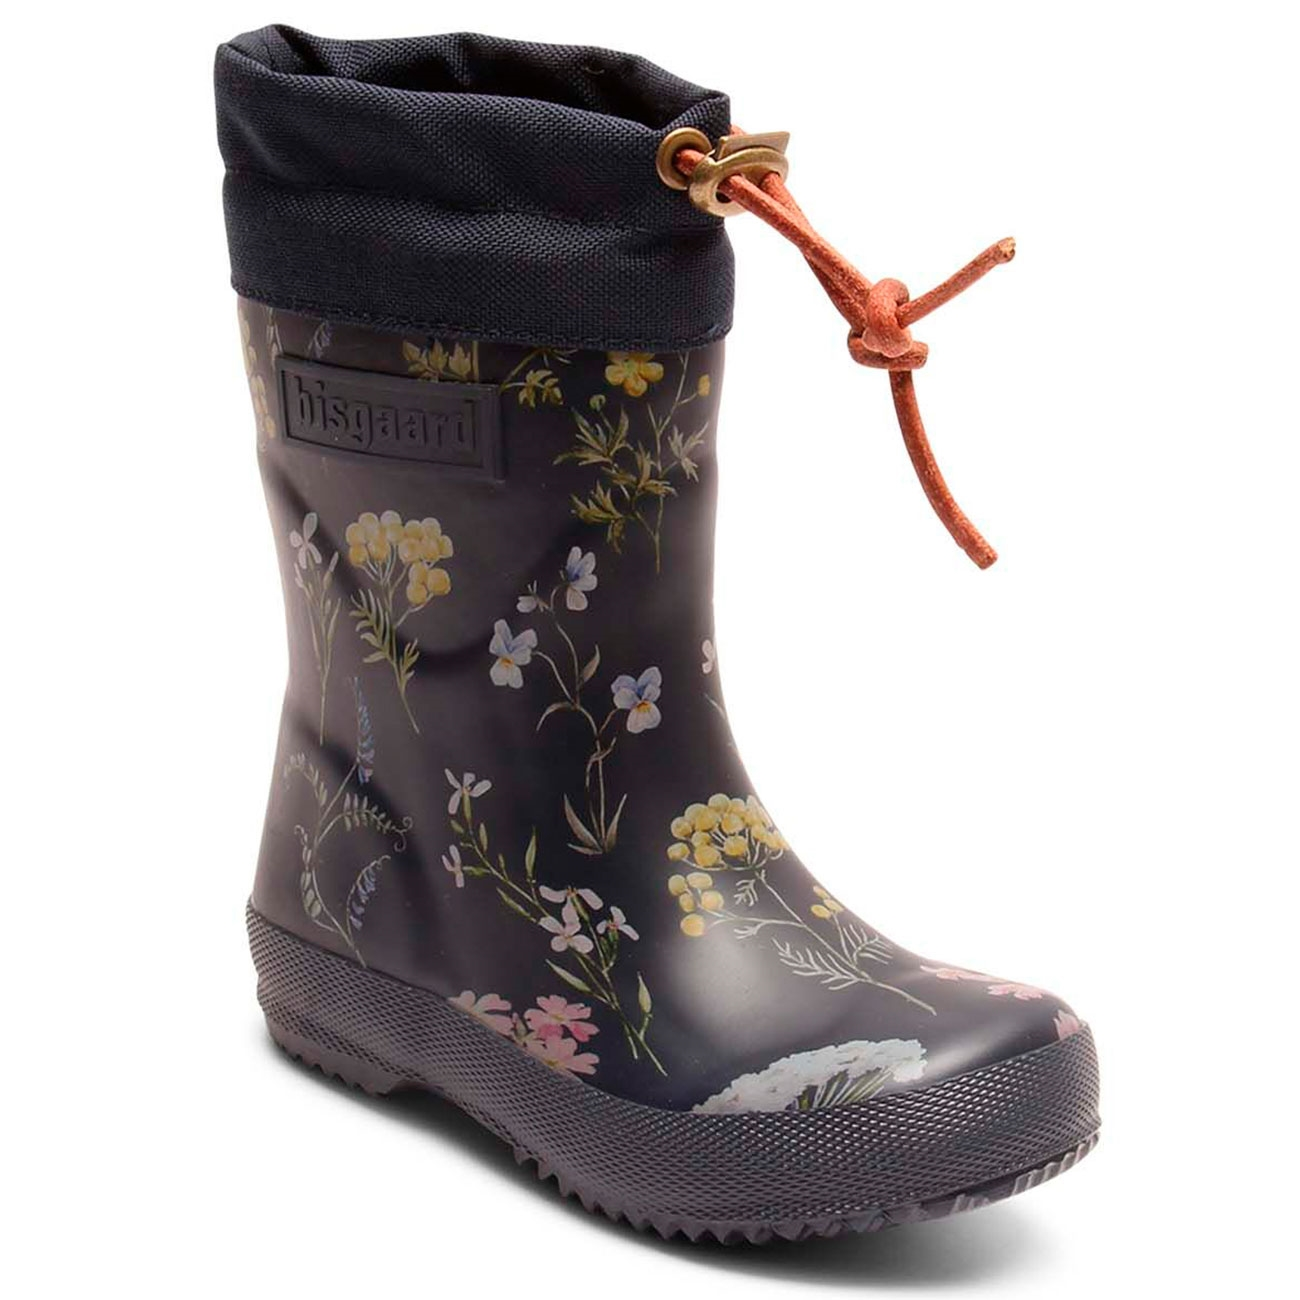 Bisgaard Winter Thermo Rubber Boots